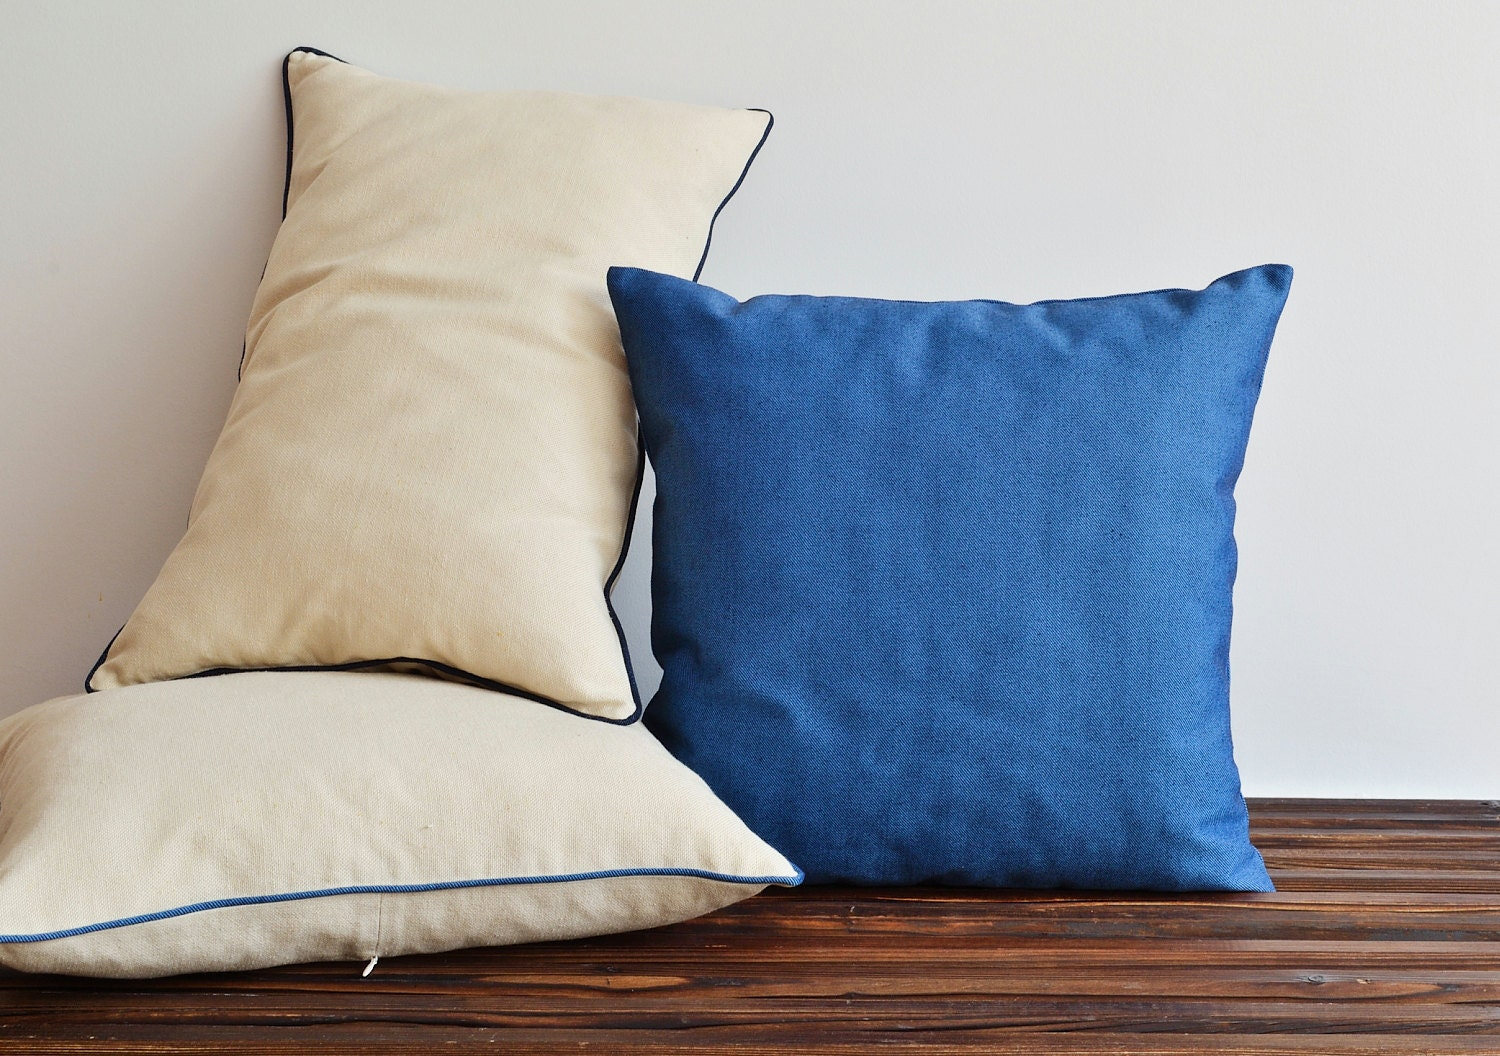 Throw Pillow Covers 20x20 : Blue Denim Pillow Cover 20x20 throw pillow by pillowme on Etsy